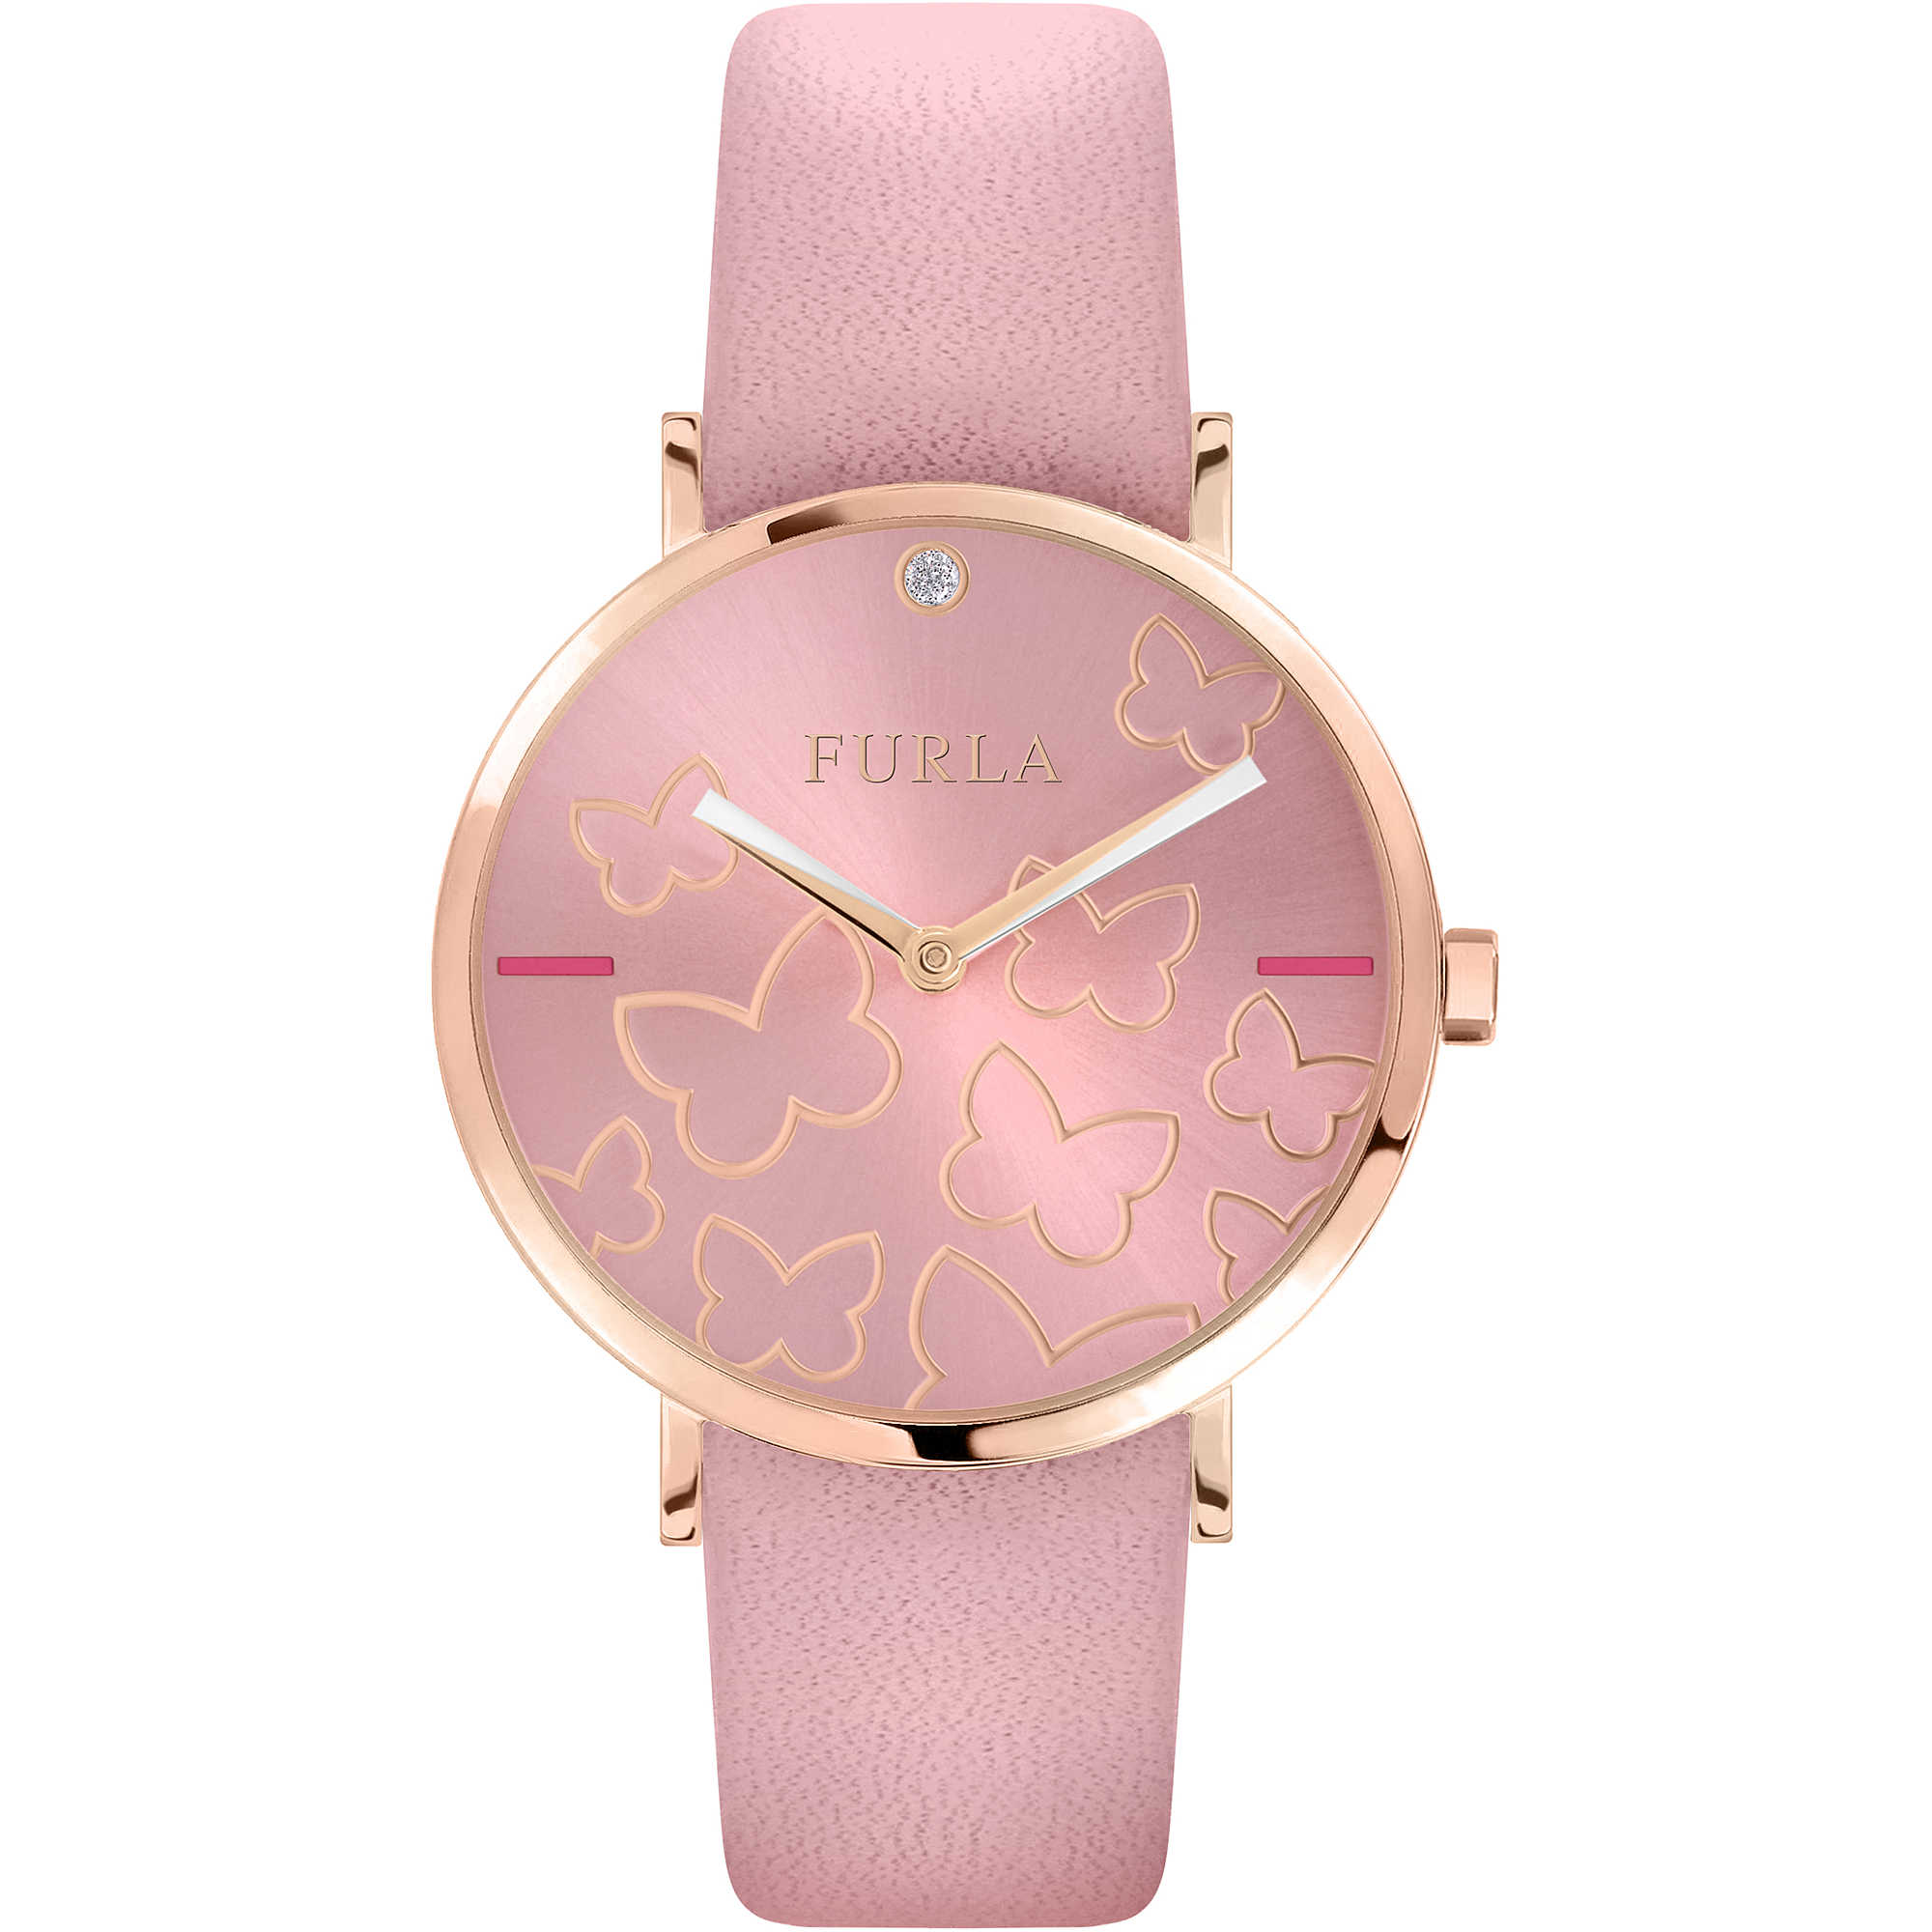 watch print watches butterfly zahrajani shop